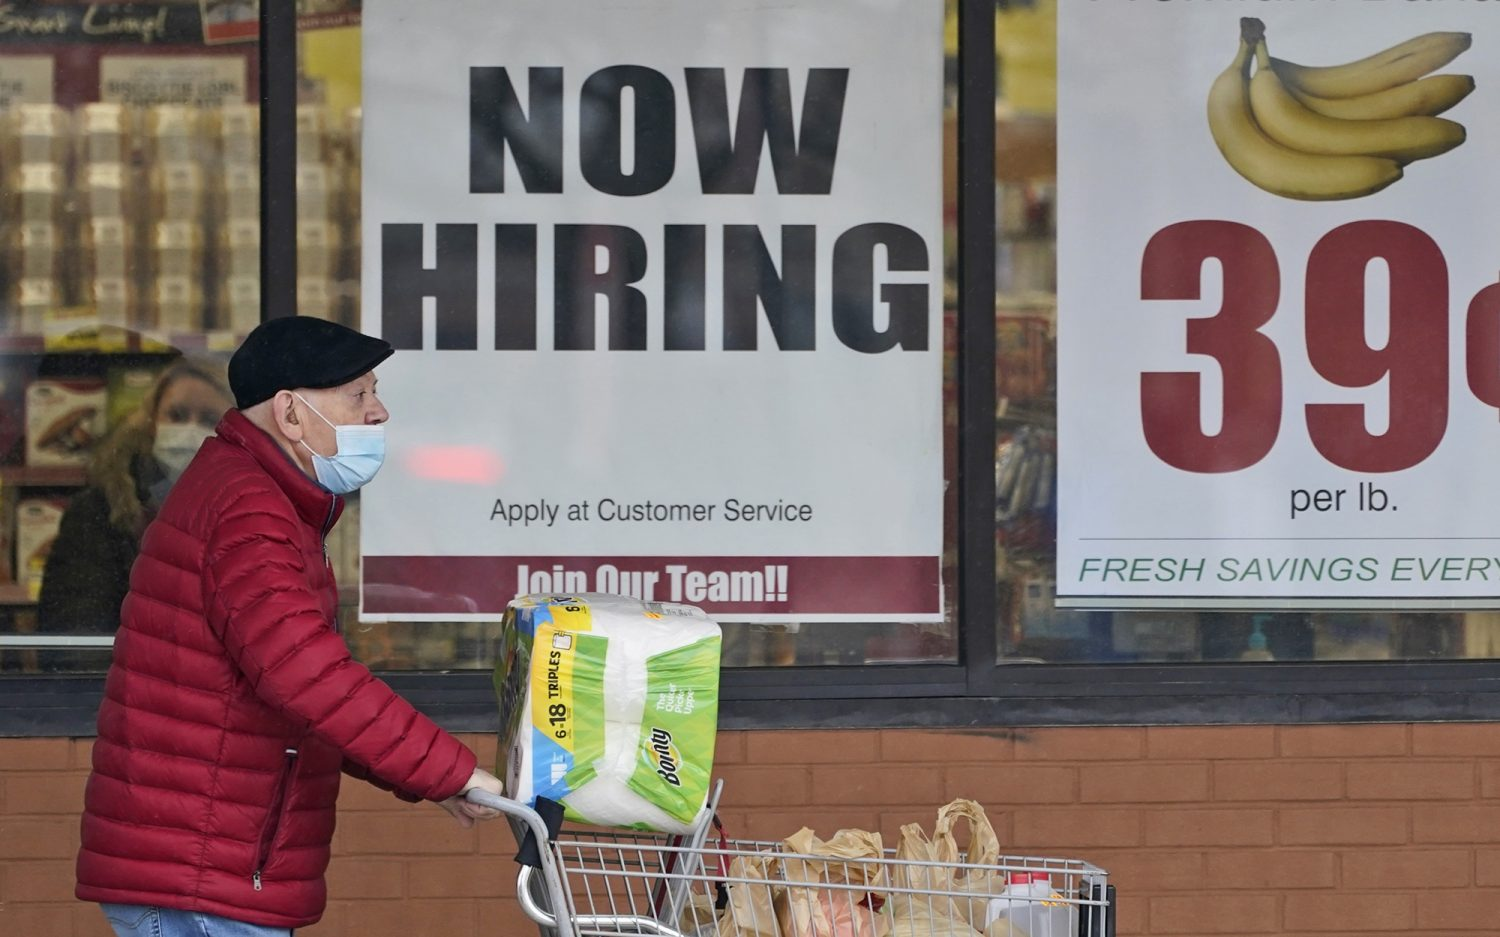 U.S. businesses struggle to find workers